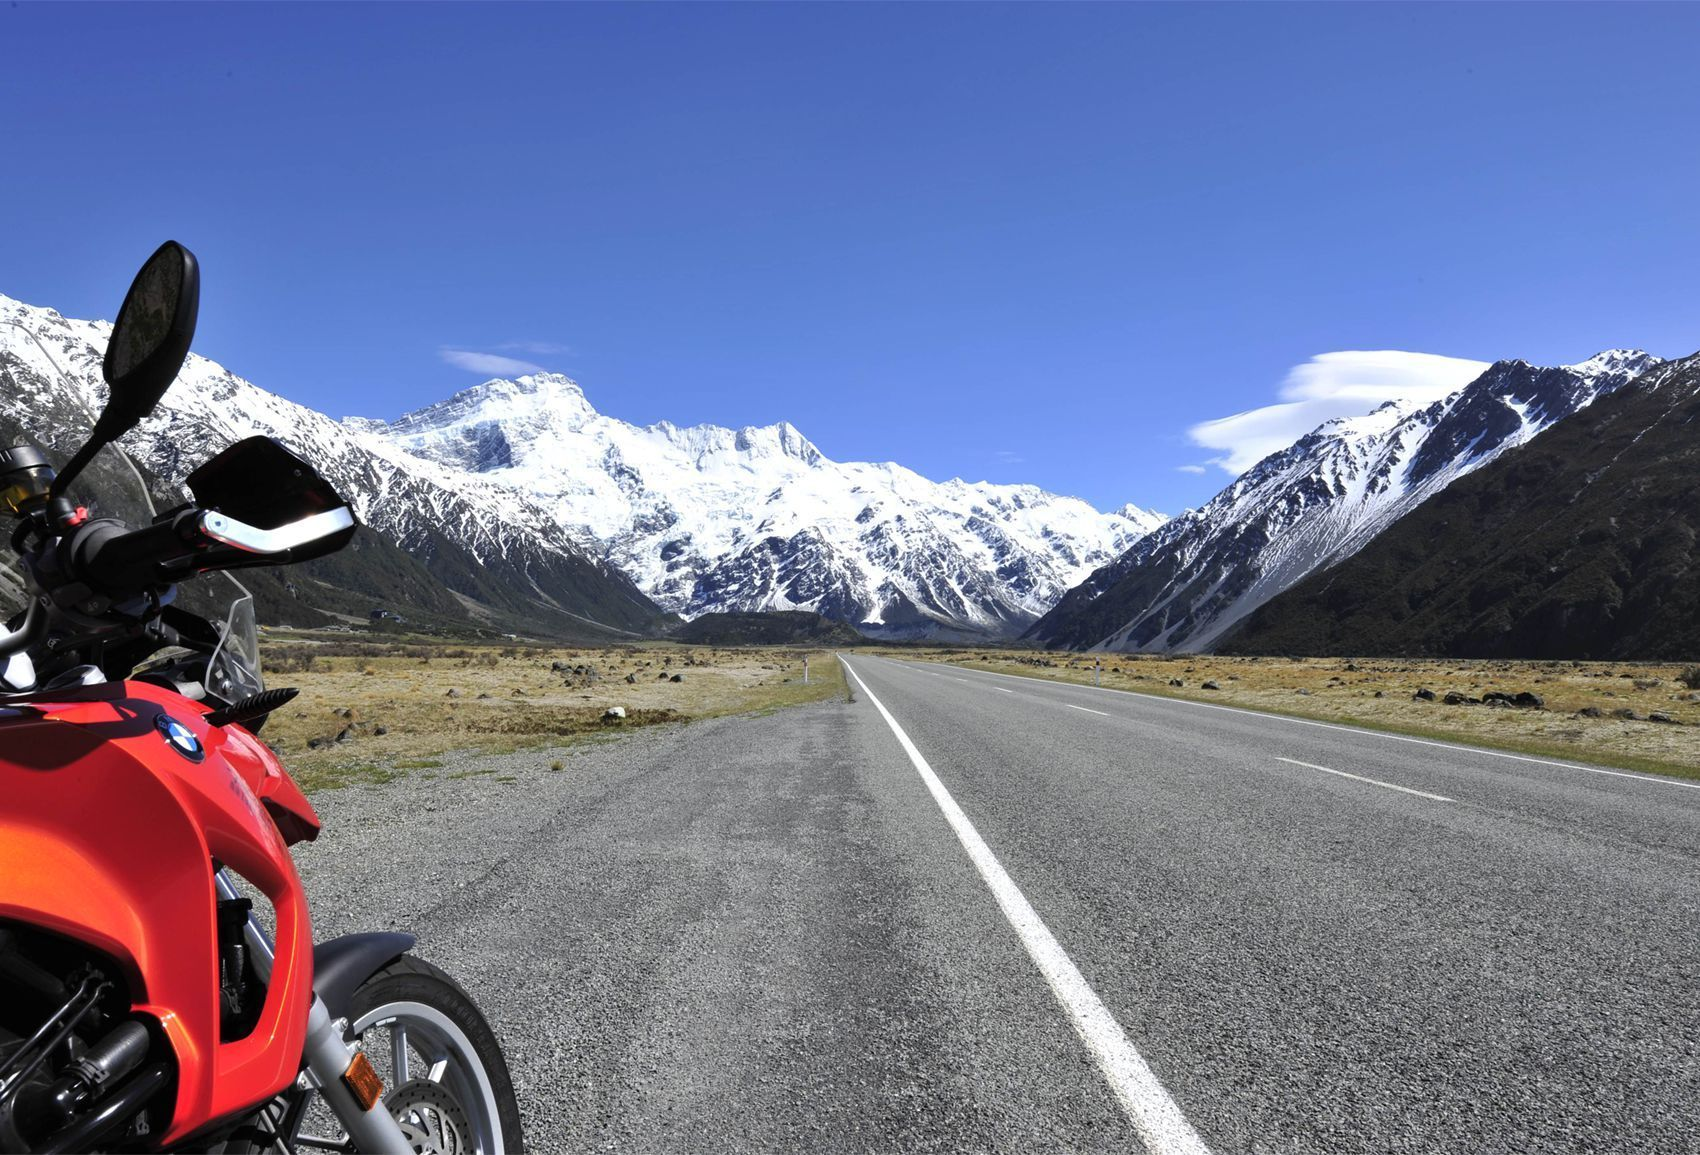 New Zealand Motorcycle Tours, Motorbike Adventures NZ, Motorbike Hire